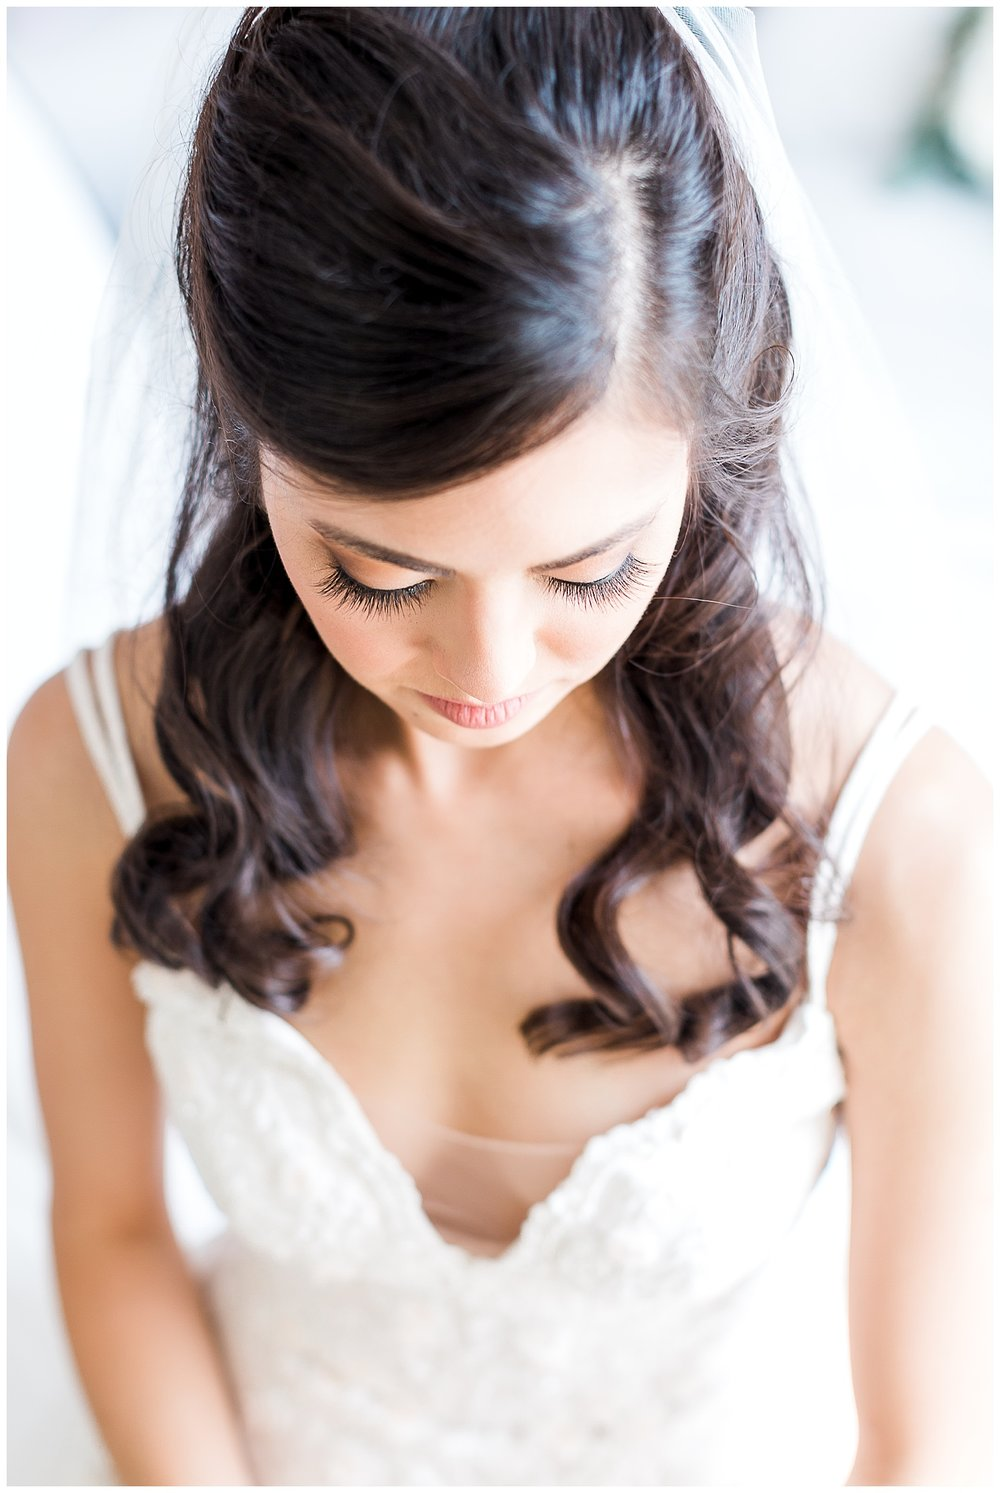 chicago-wedding-photographer-naperville-romantic-bride-groom-neutrals-blush-11.jpg